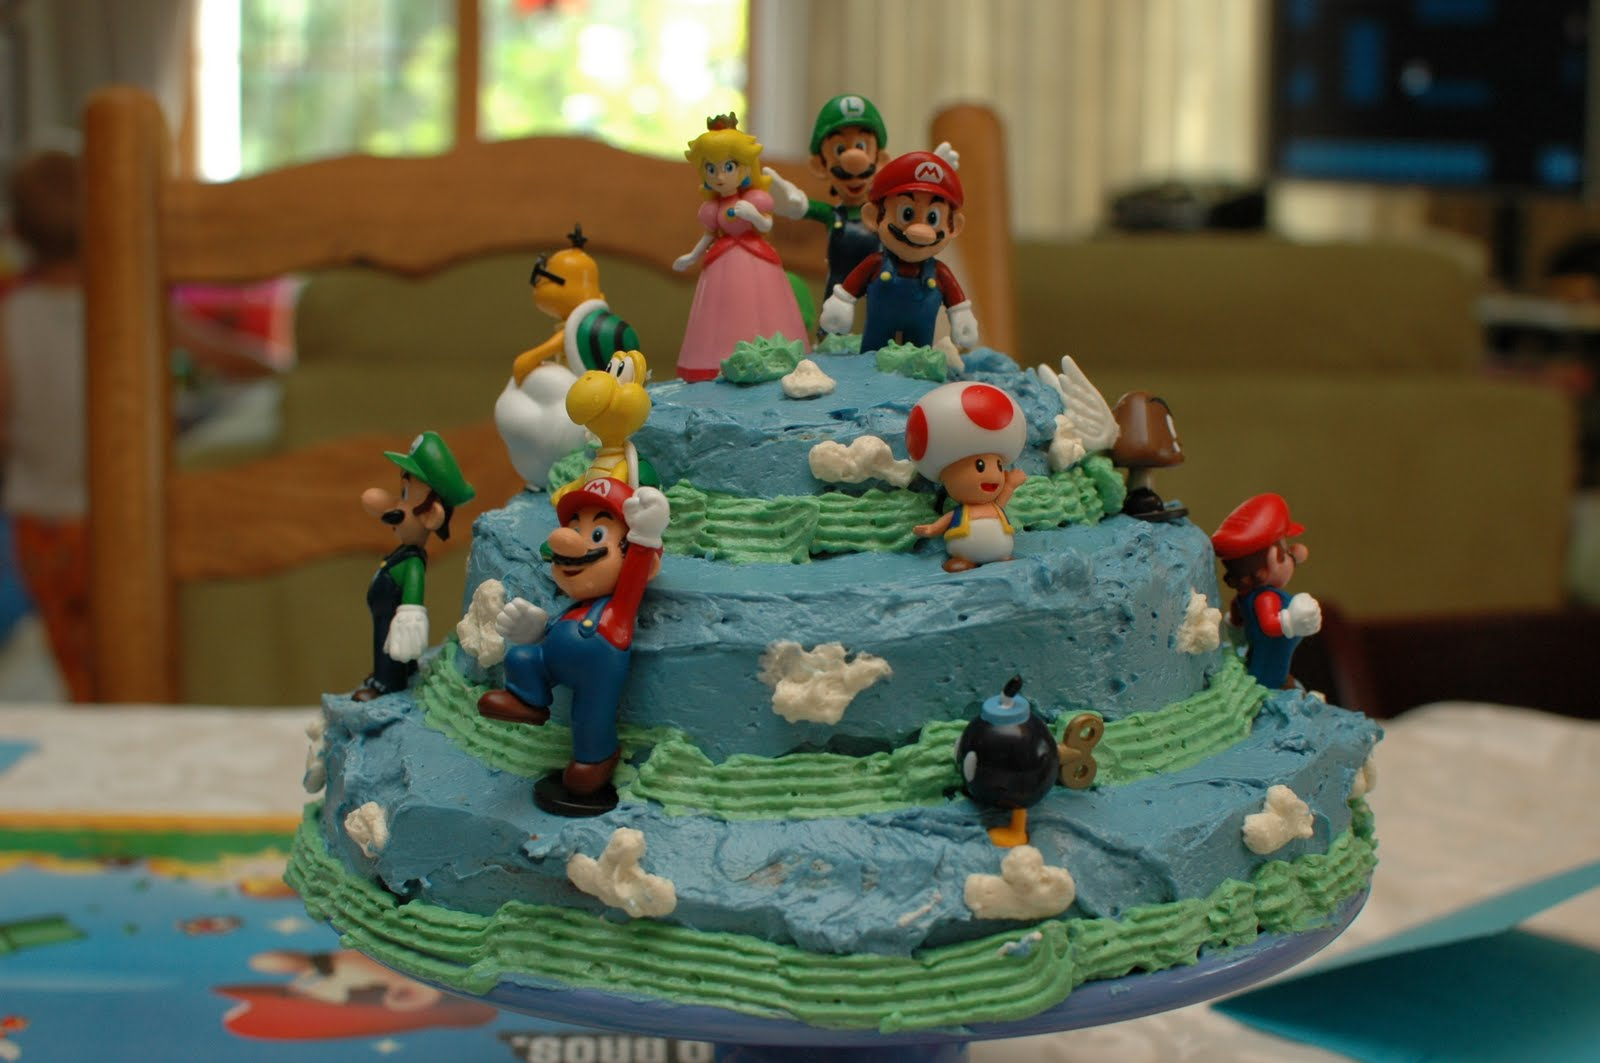 A busy lizzie life Super Mario Brothers Birthday Party